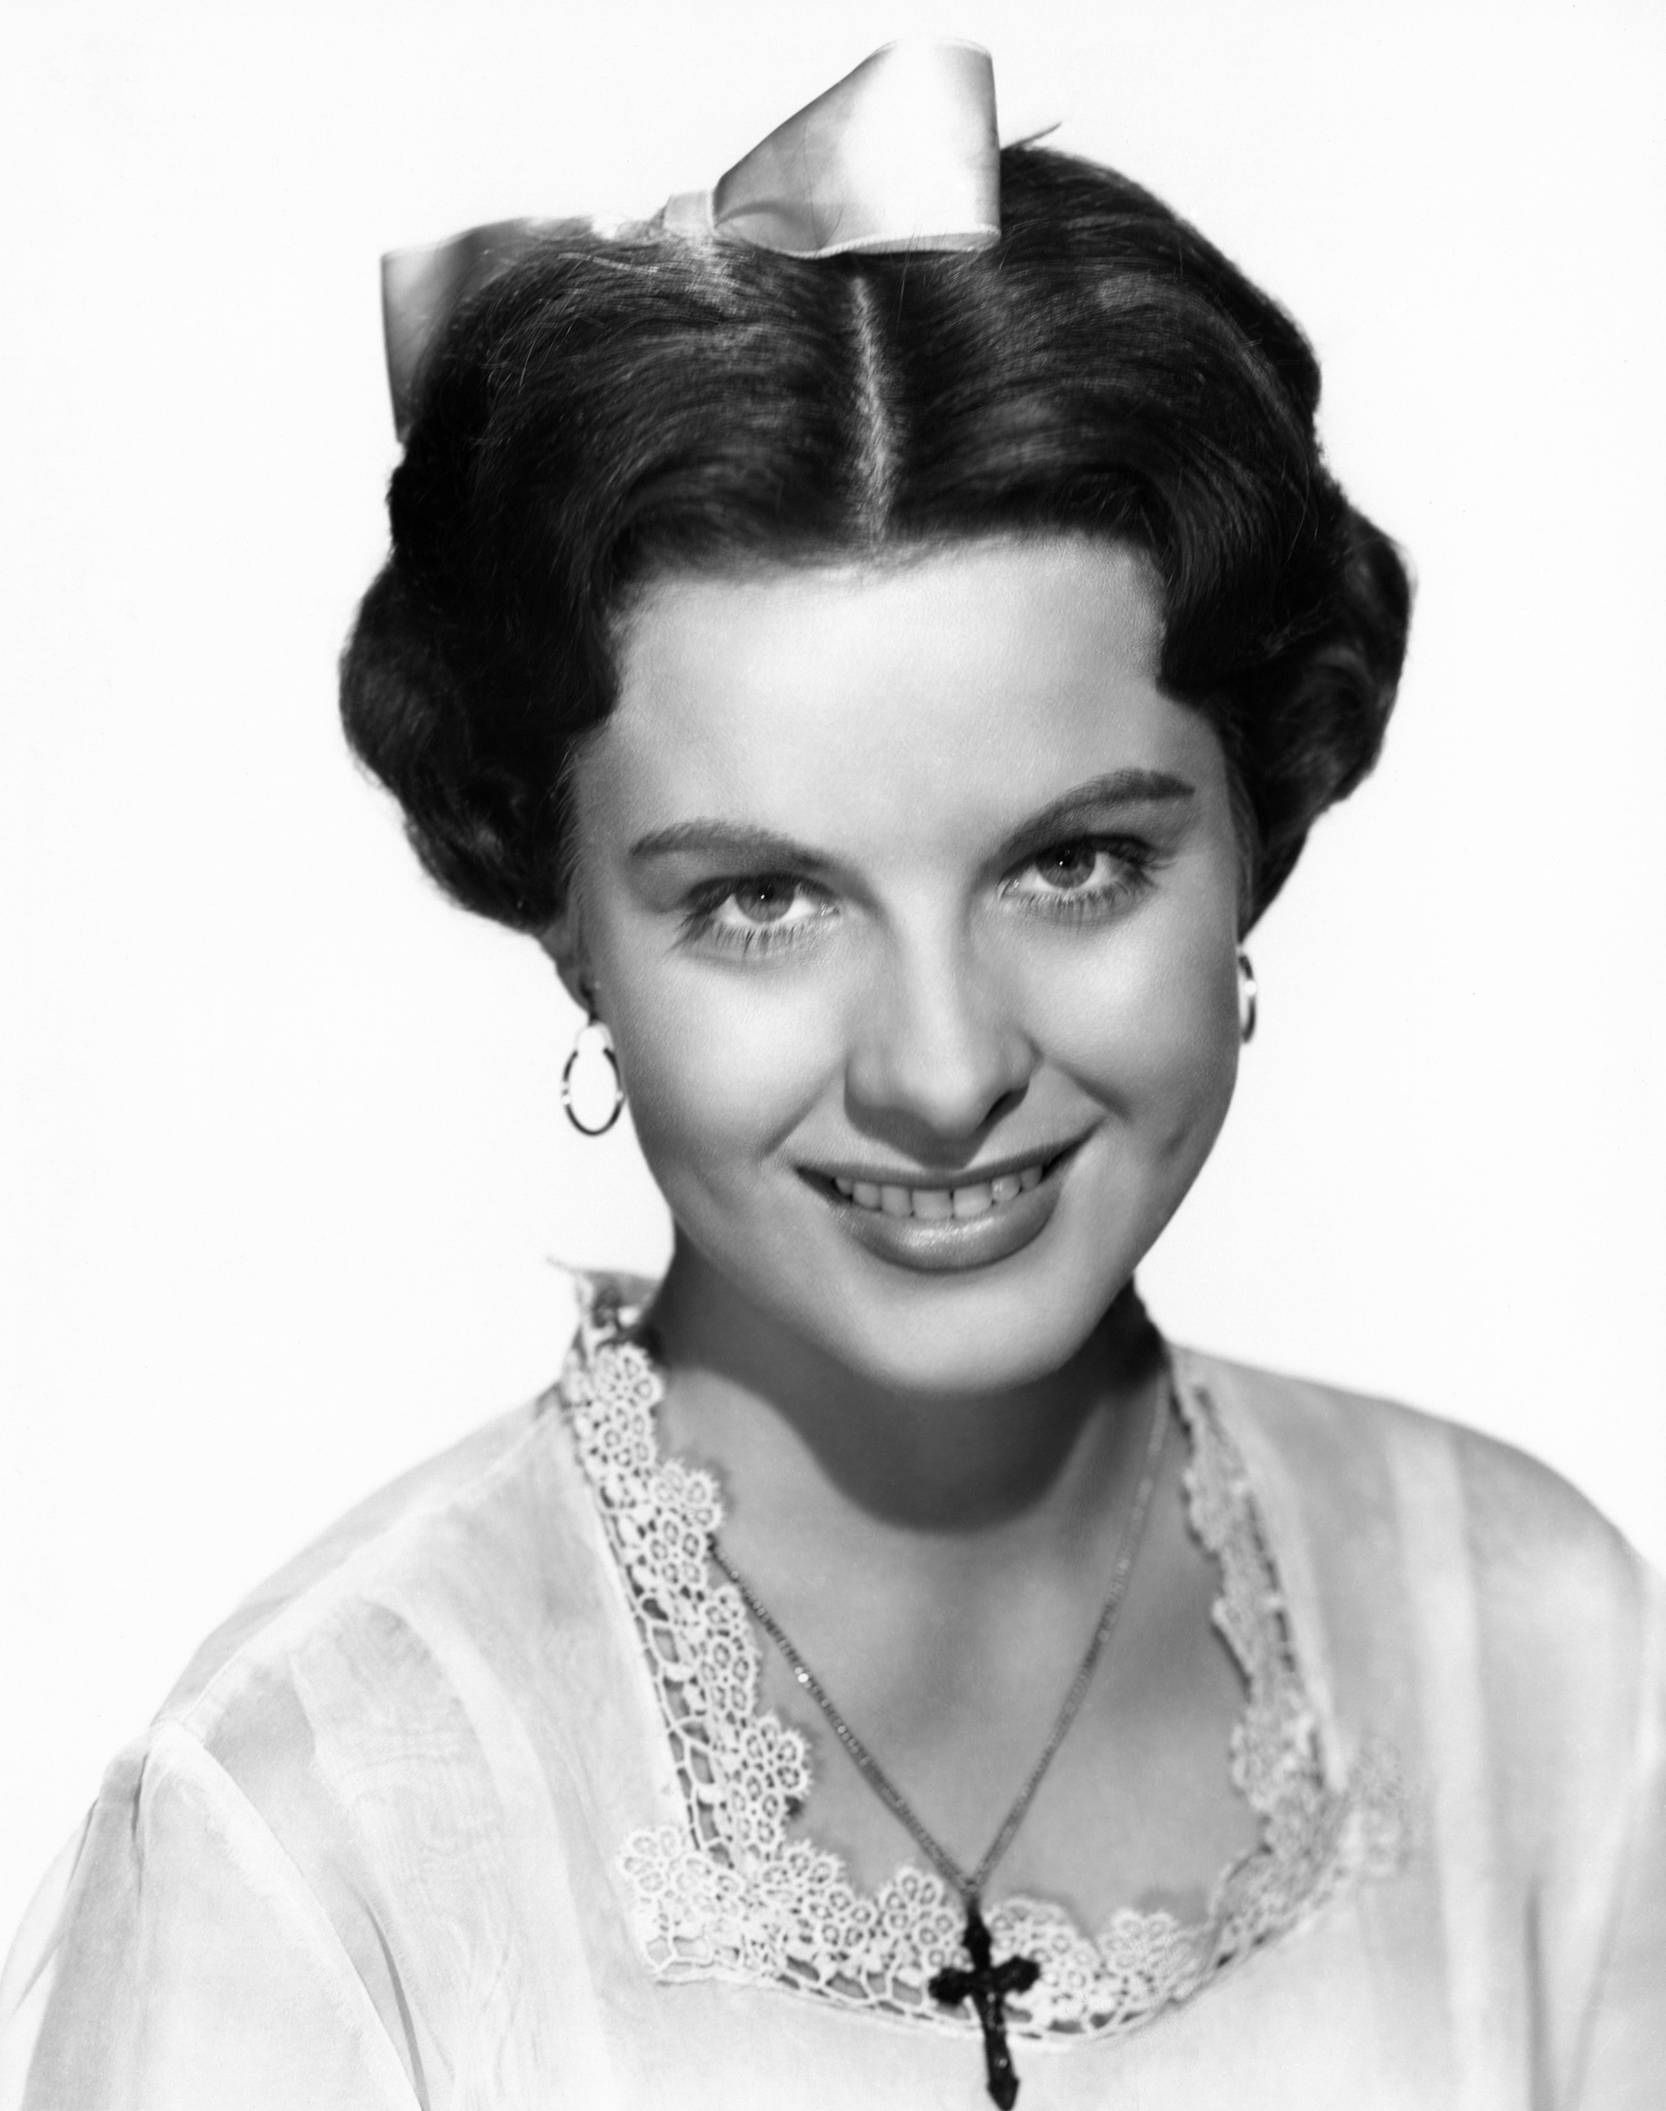 jean peters net worthjean peters wiki, jean peters actress, jean peters and howard hughes, jean peters berlin, jean peters obituary, jean peters baker, jean peters peng, jean peters imdb, jean peters photos, jean peters measurements, jean peters facebook, jean peters howard hughes photos, jean peters net worth, jean peters kerkrade, jean peters grave, jean peters howard hughes marriage, jean peters architecte, jean peters coaching, jean peters hot